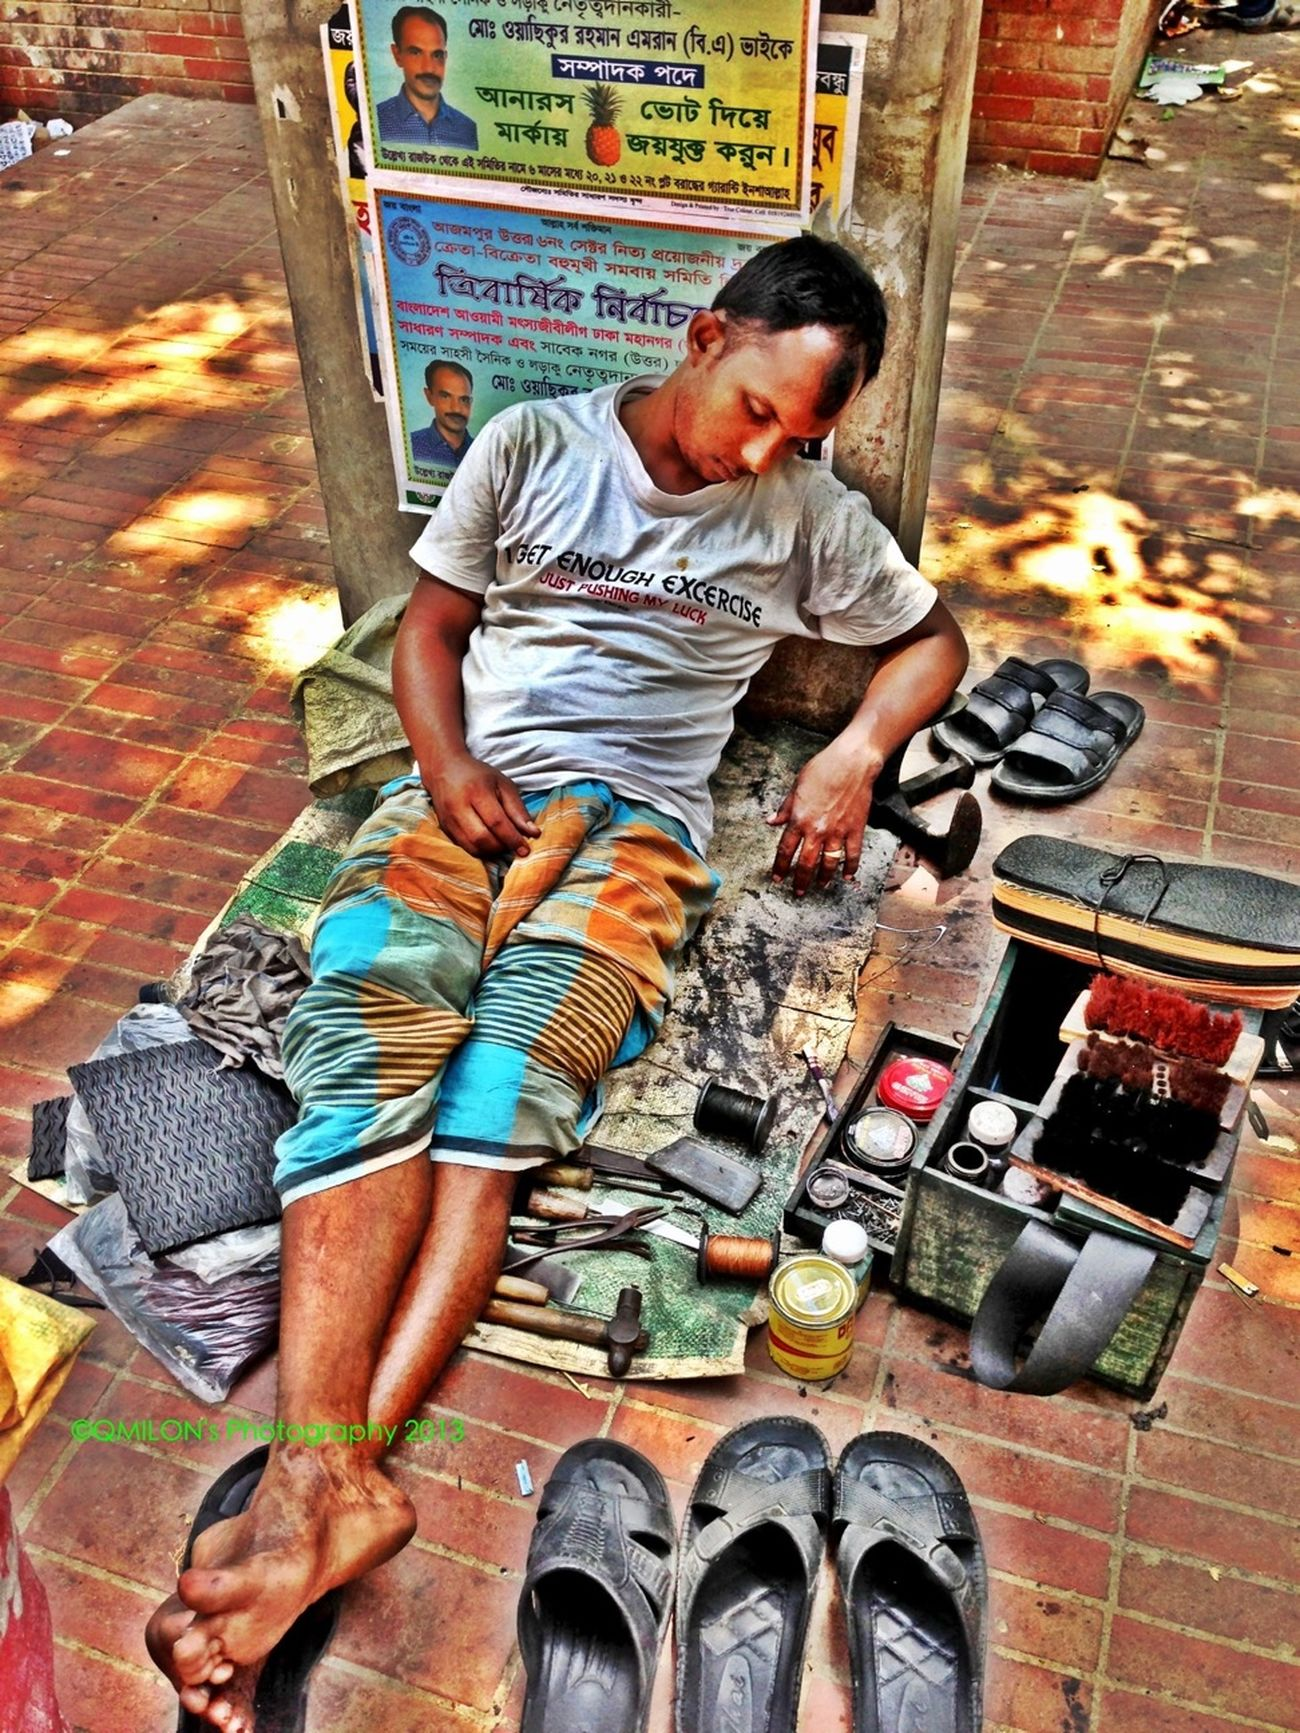 #Shoemaker #2013 #qmilon #iphonephotography #Weiriness #CapturedMoment #HDR #HdrCreators Weariness #Shoemaker #2013 #qmilon #iphonephotography #streetphotography #CapturedMoment #HDR #HdrCreators